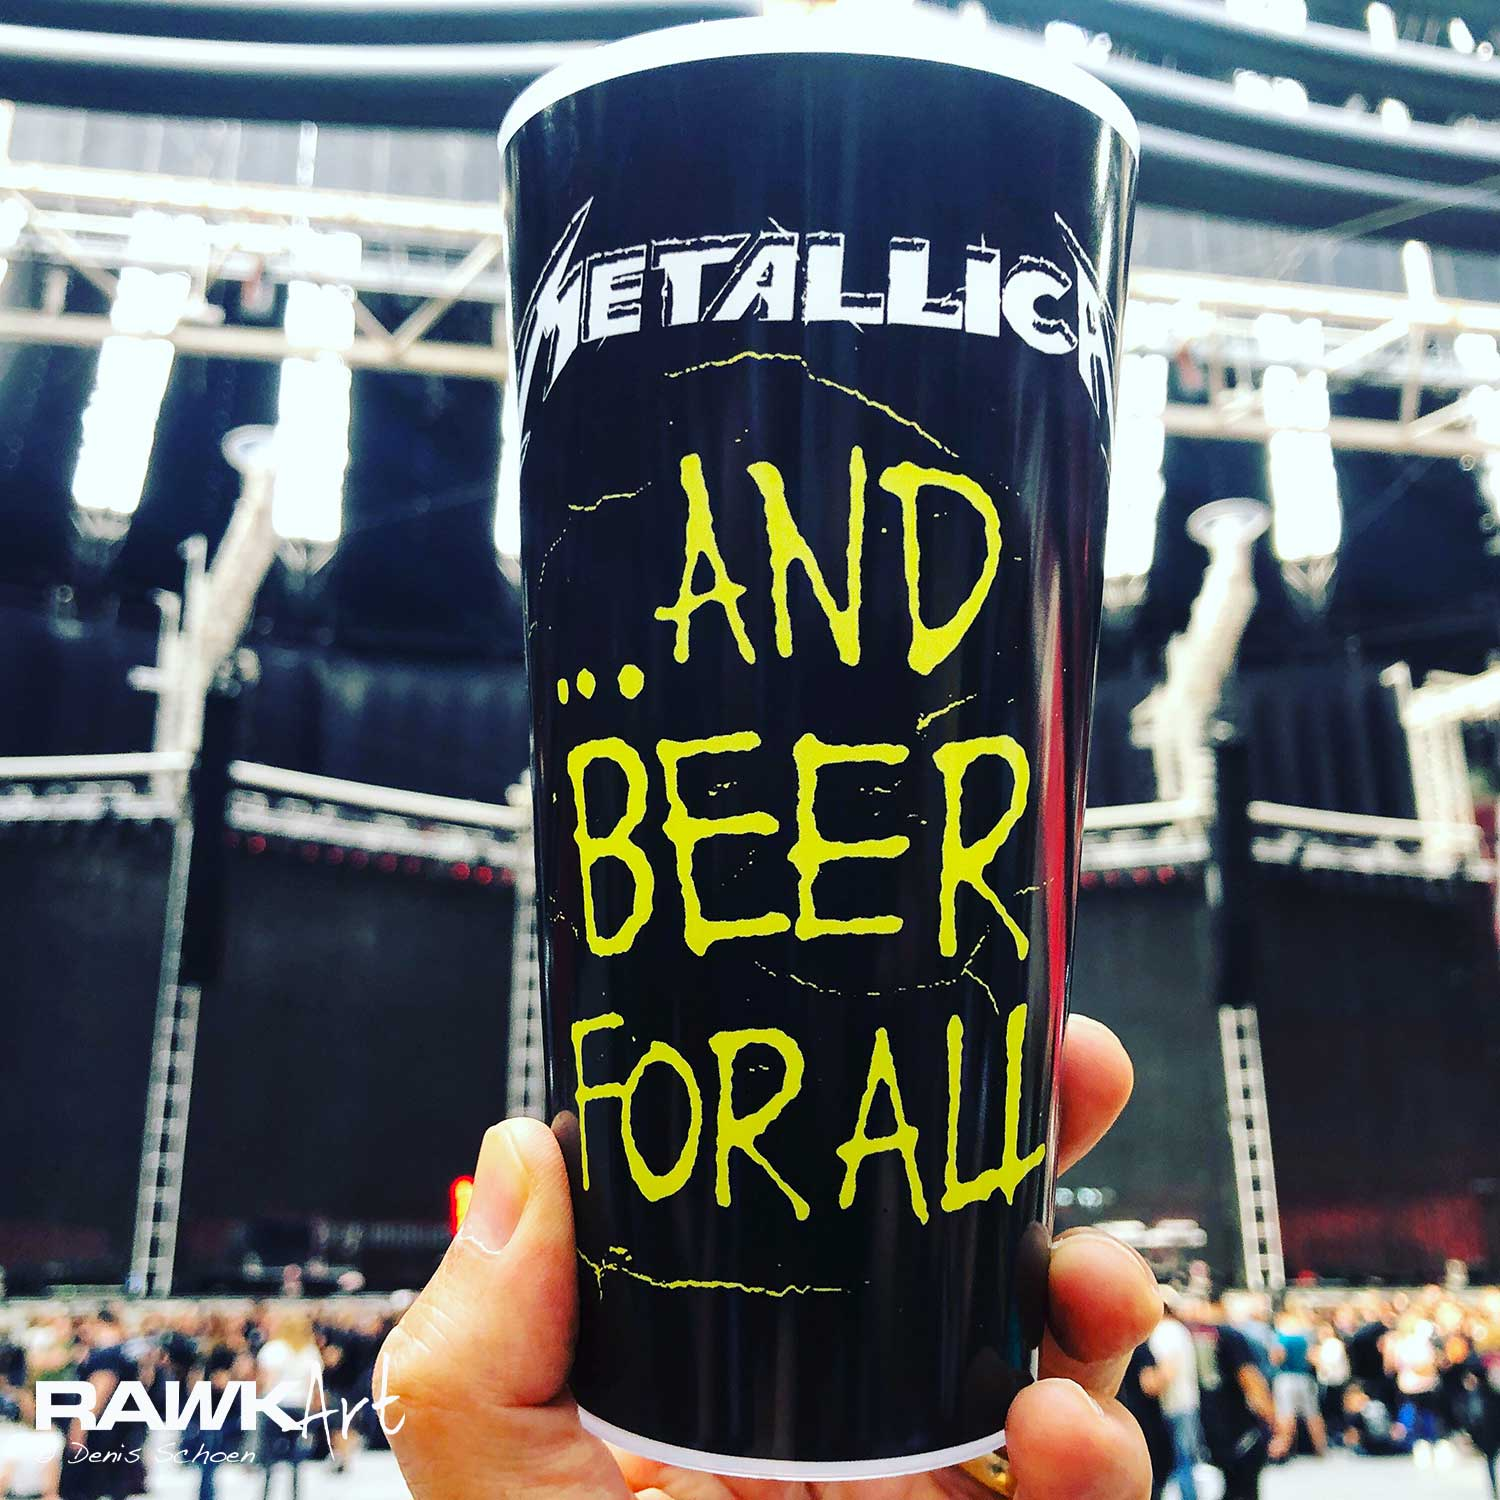 Metallica at Johan Cruyff Arena, Amsterdam, Netherlands 2019, Worldwired Tour